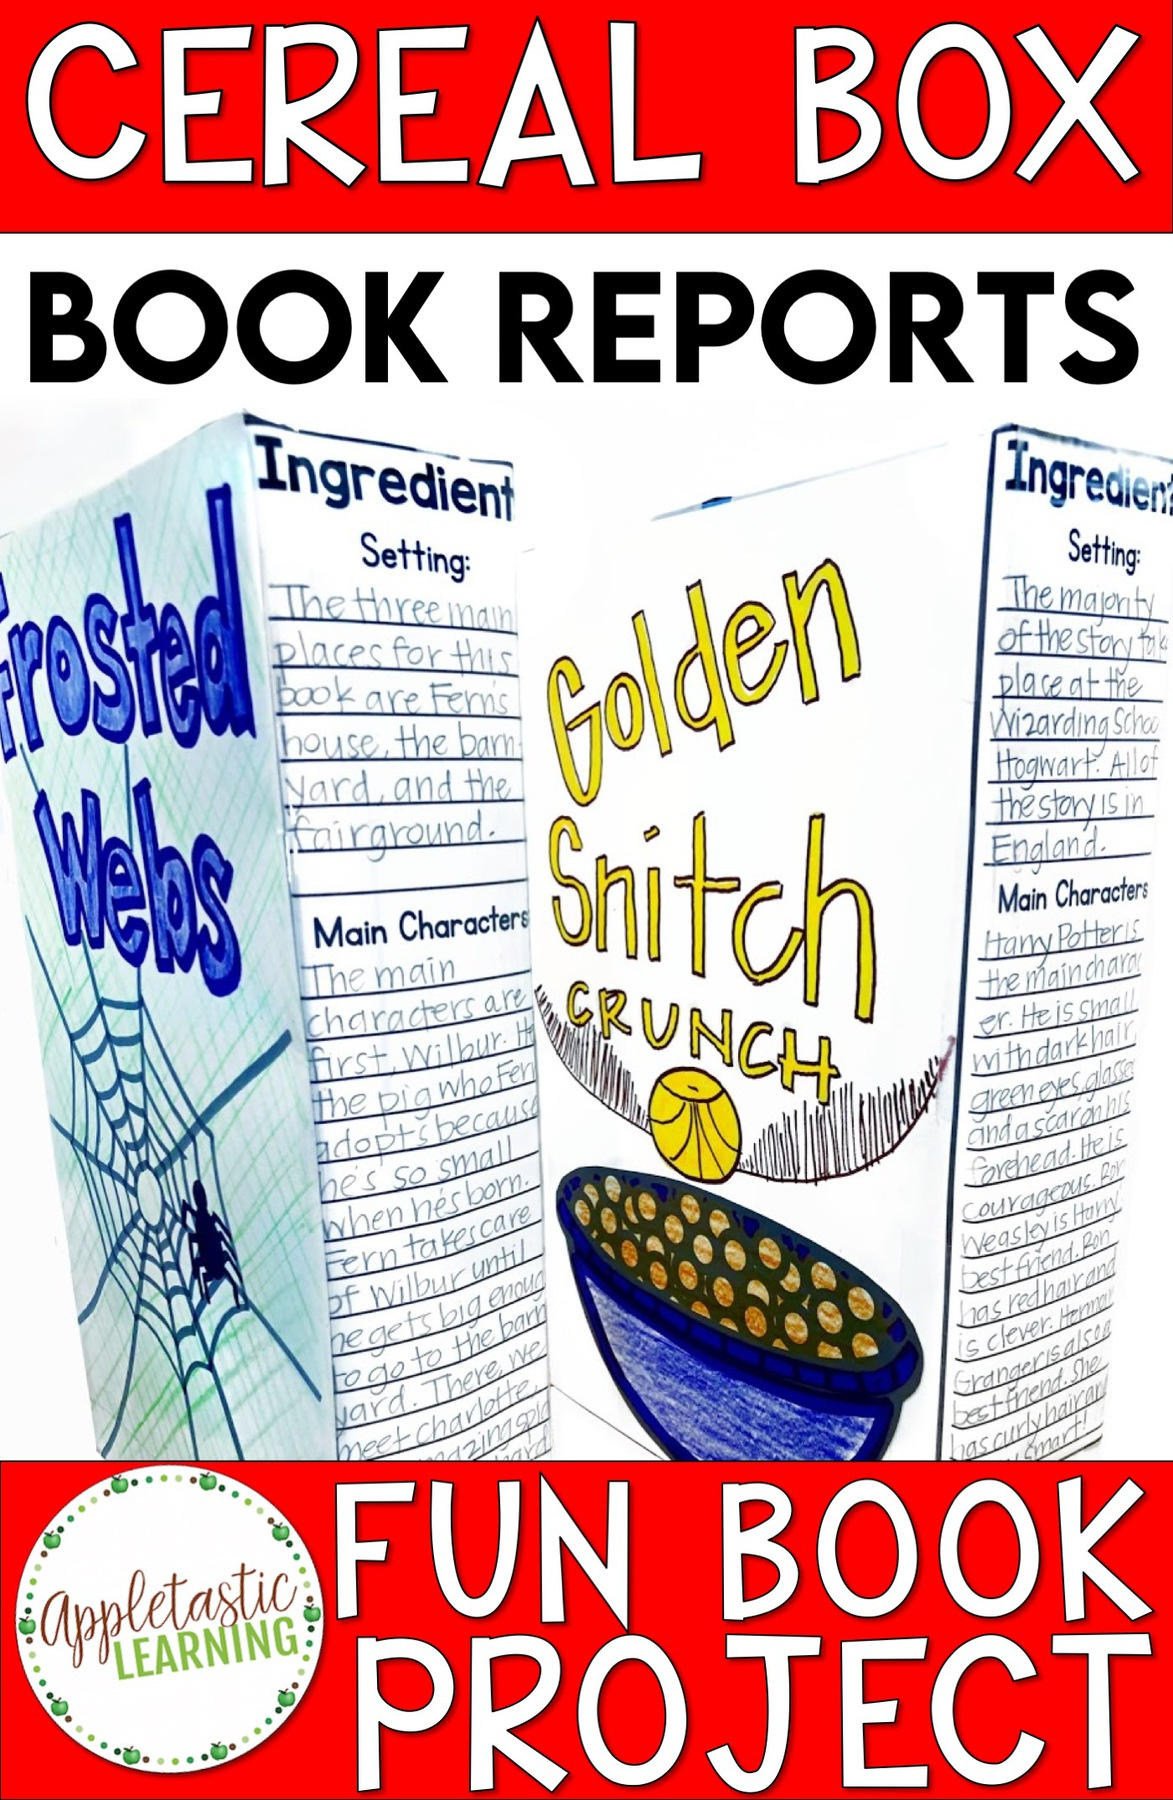 Pictures of cereal box book reports essay questions wuthering heights